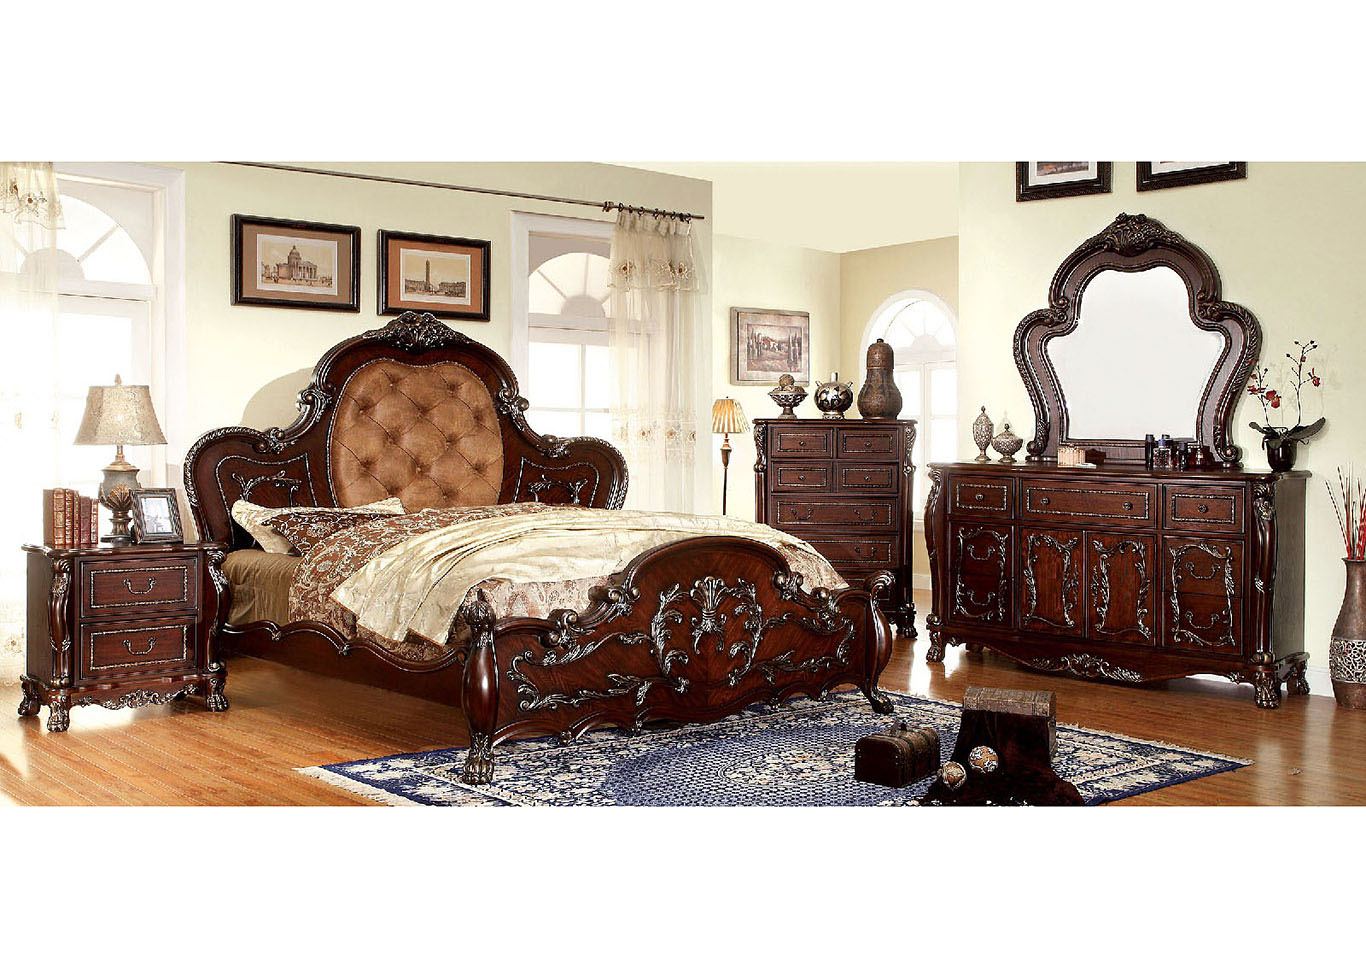 Castlewood Cherry Queen Platform Bed w/Filigree Carvings,Furniture of America